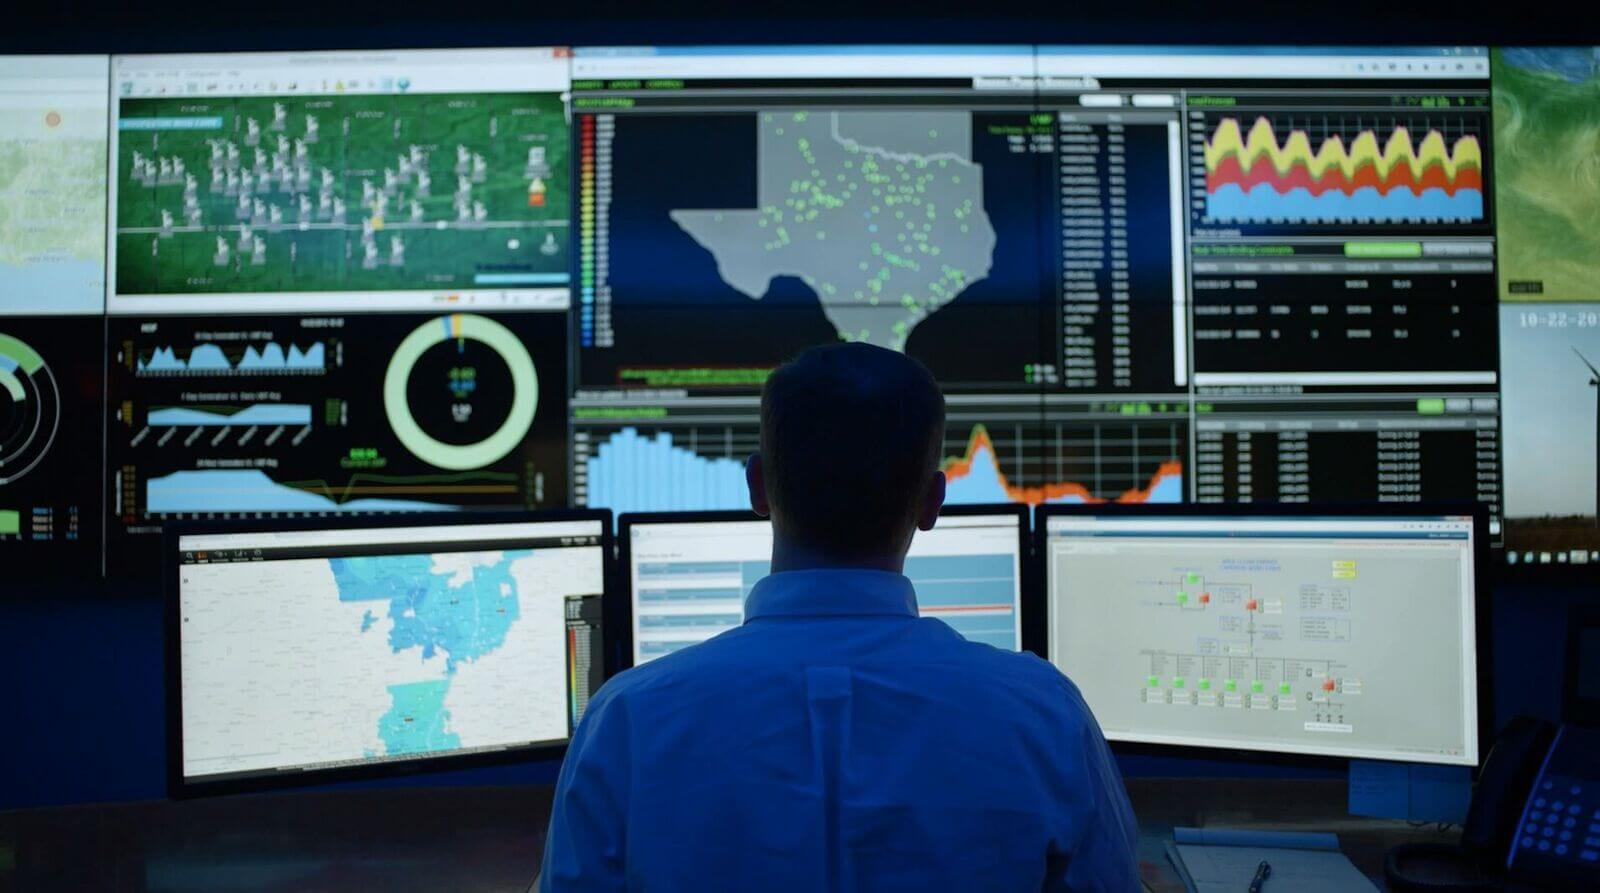 Case study from the remote operations control center at Apex